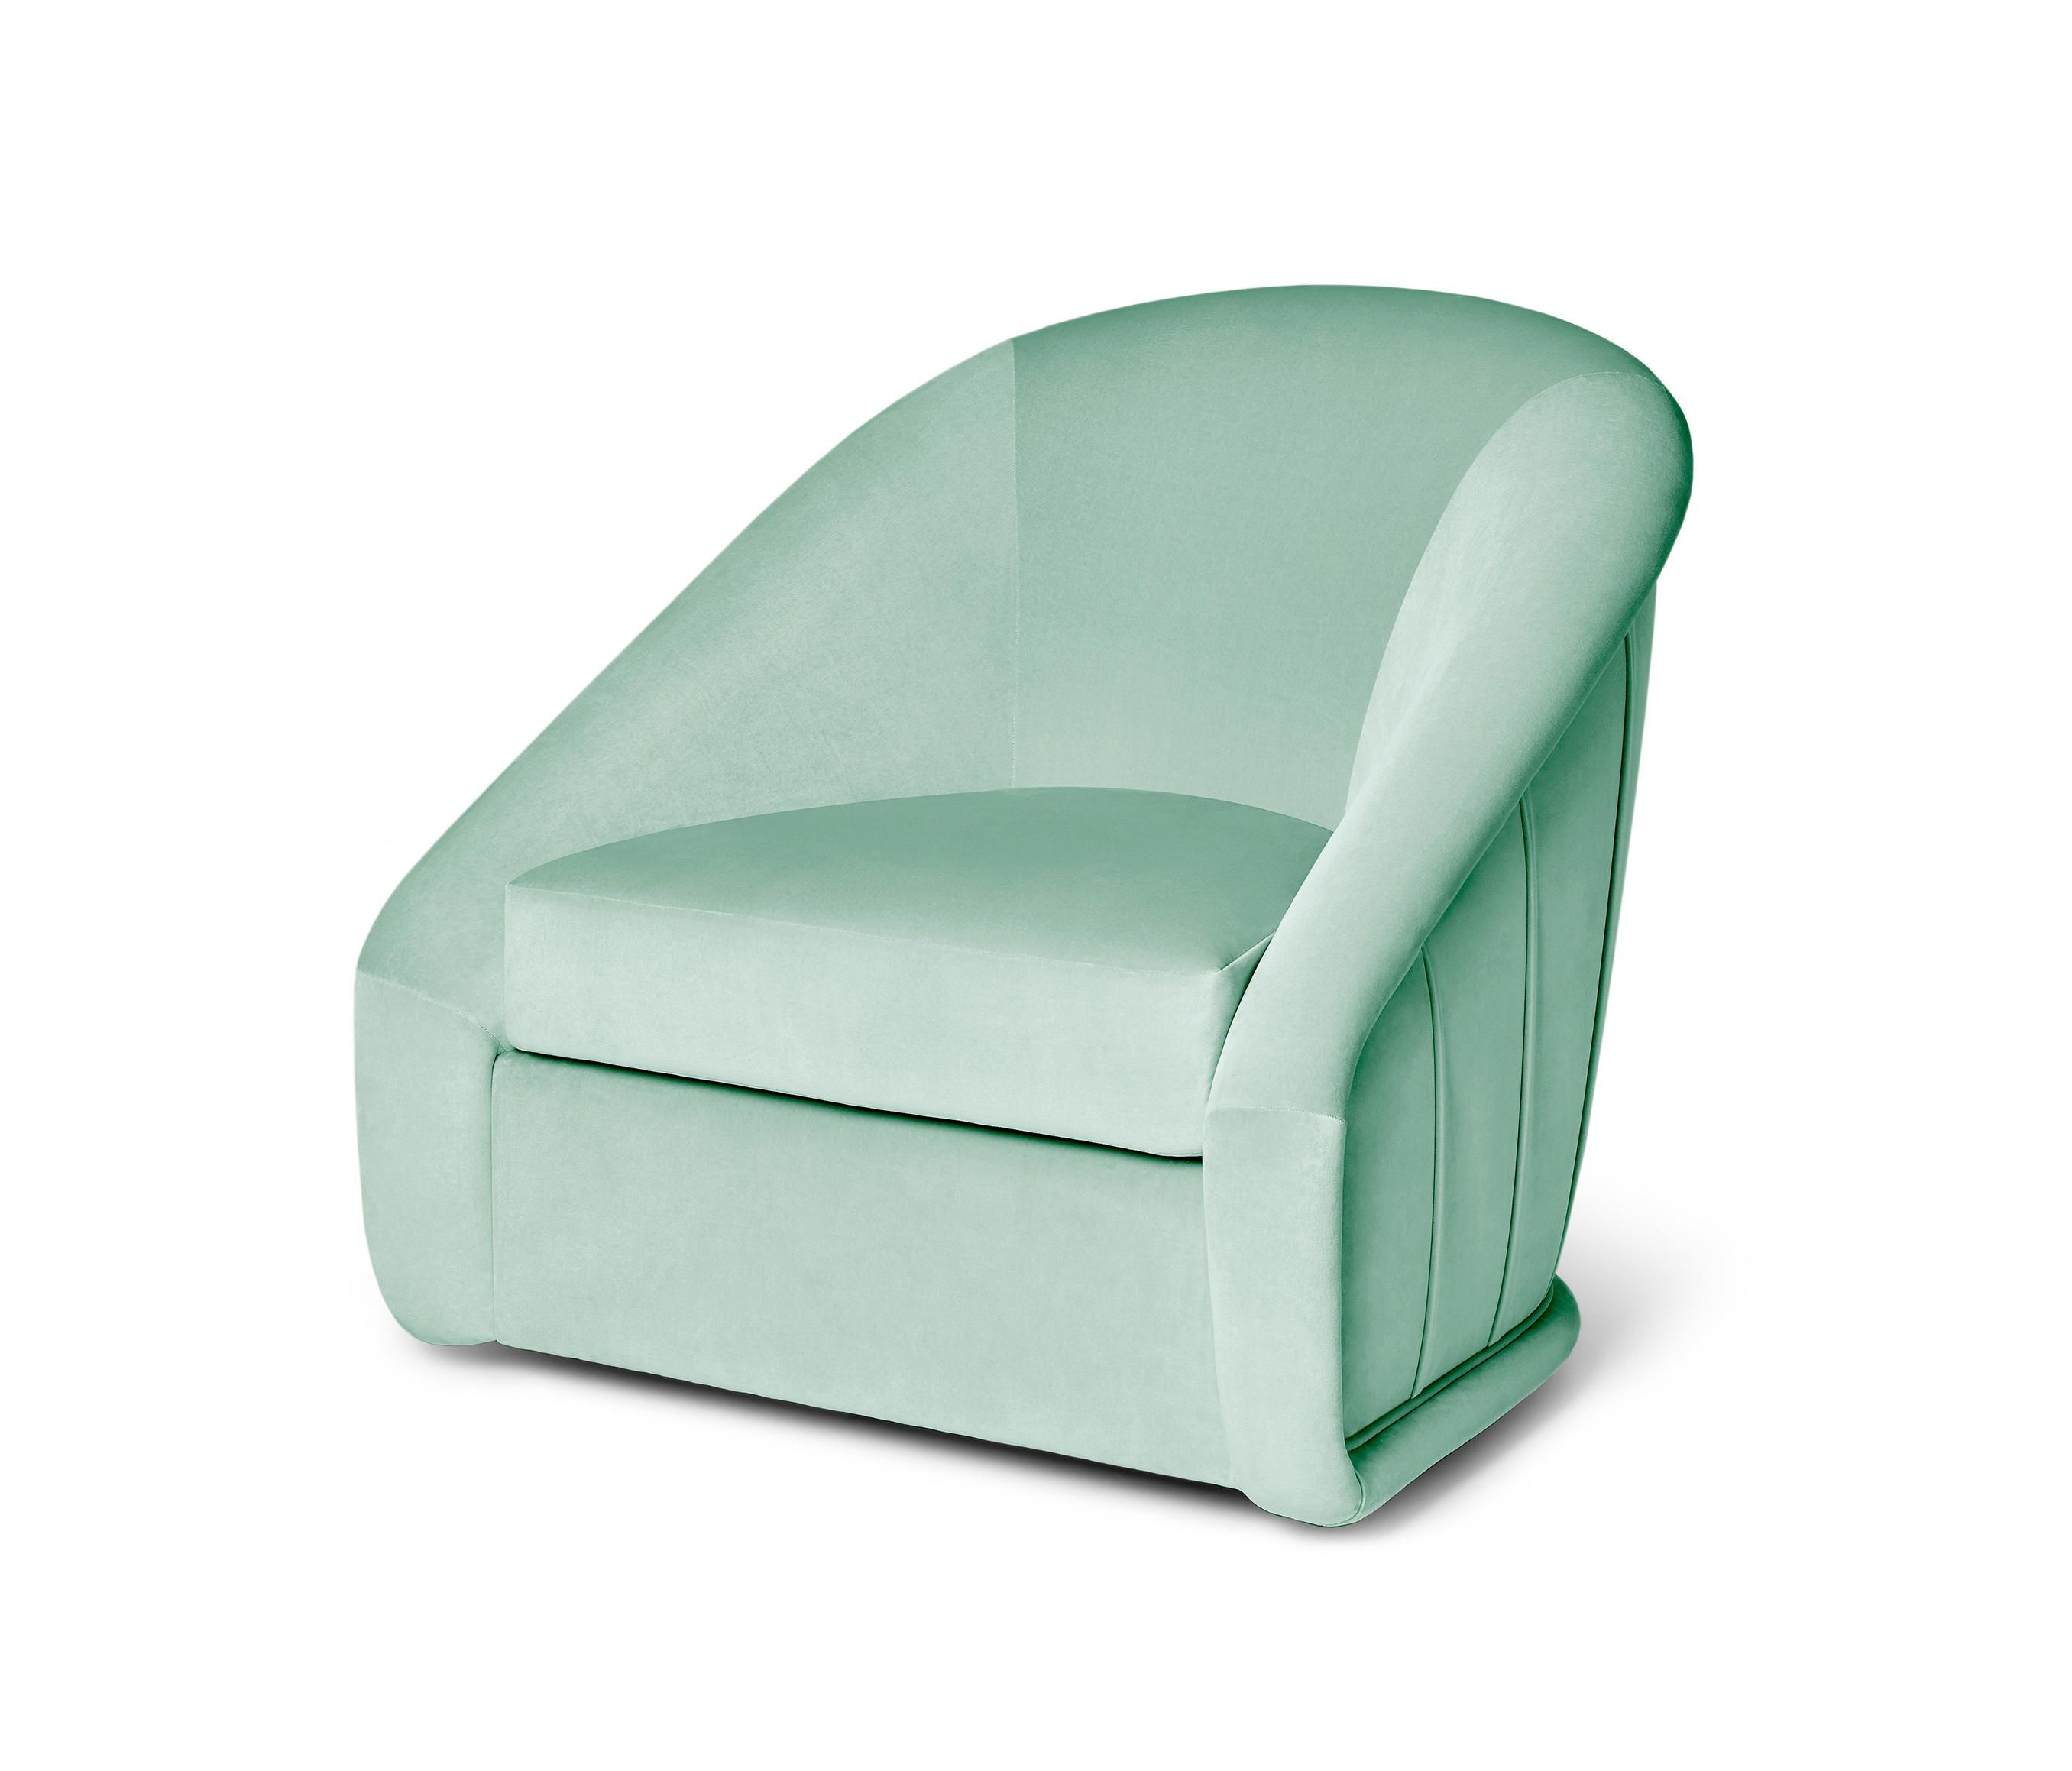 Queen b swivel armchair by ema antunes for munna architonic nowonarchitonic interior design furniture seating armchair chair green cotton